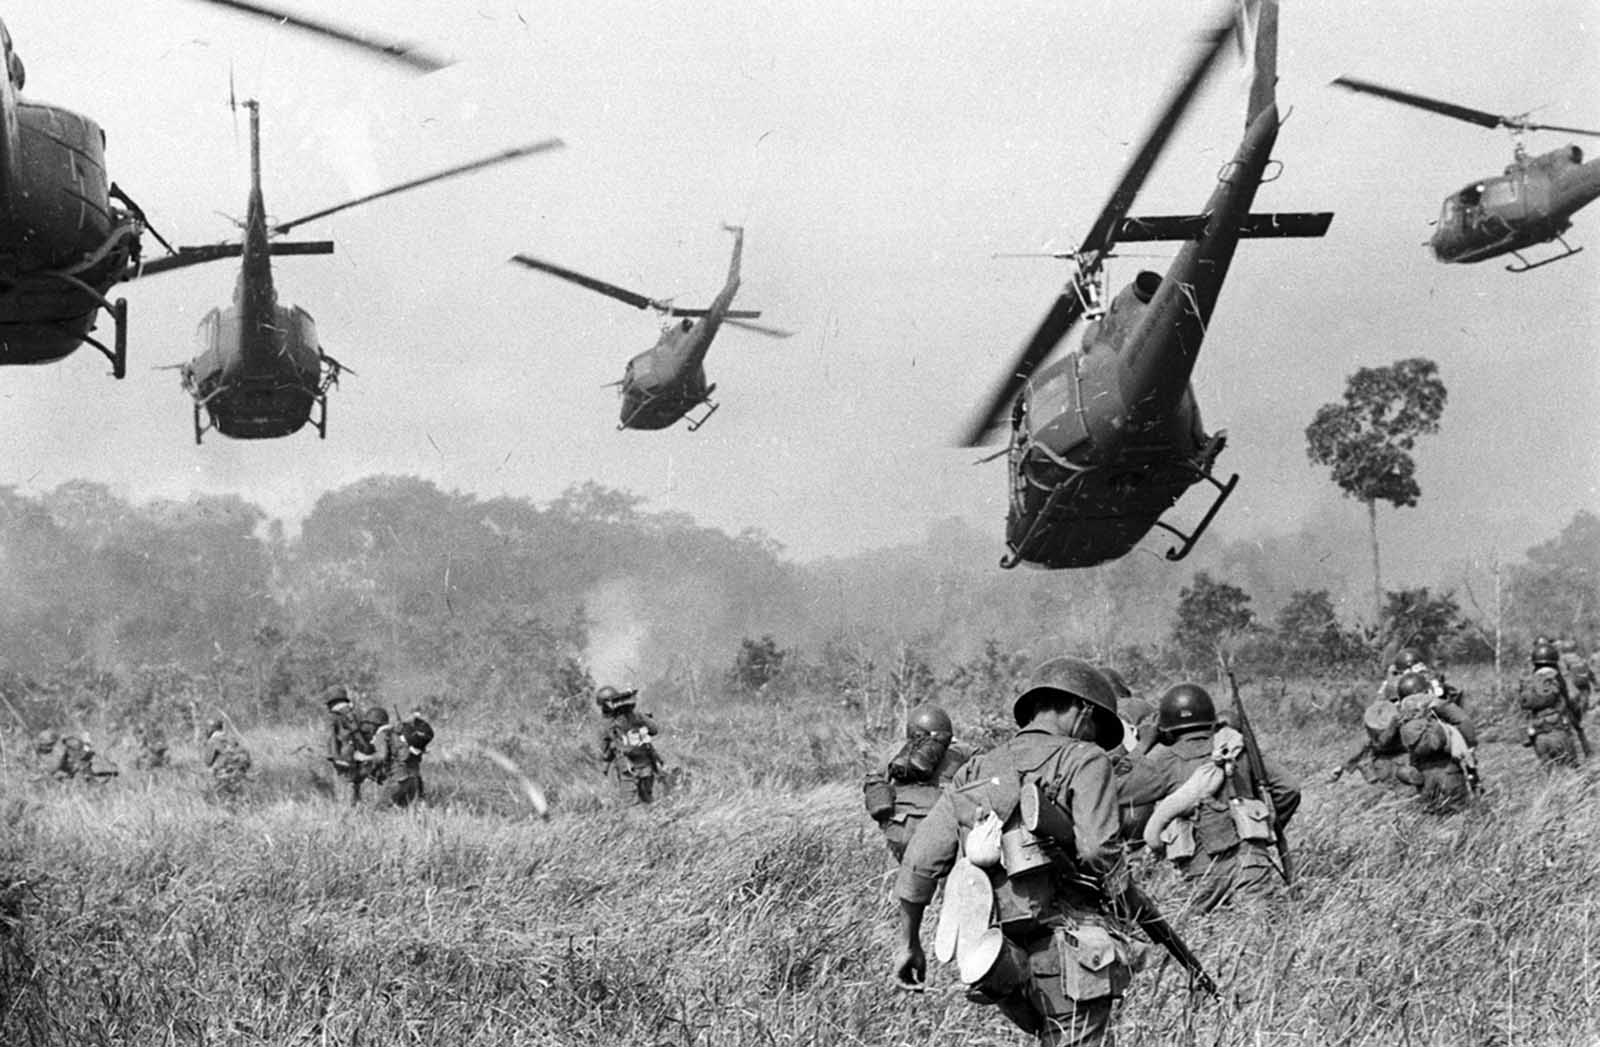 Hovering U.S. Army helicopters pour machine gun fire into a tree line to cover the advance of South Vietnamese ground troops in an attack on a Viet Cong camp 18 miles north of Tay Ninh, near the Cambodian border, in March of 1965.